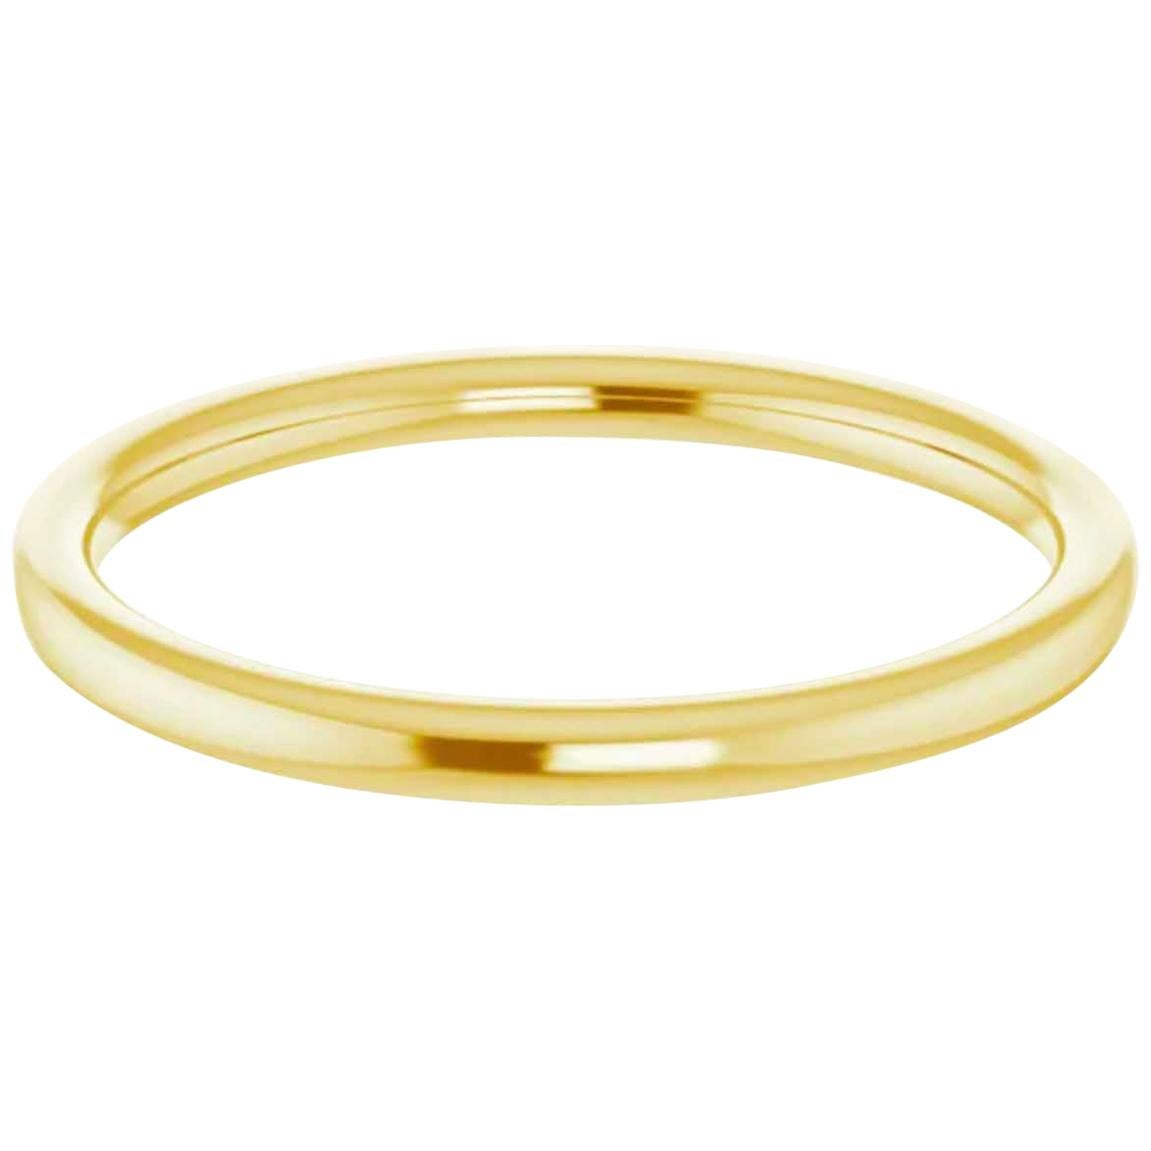 Yellow Gold Band,-2 mm 14k Gold Half Round Wedding Band High Polished